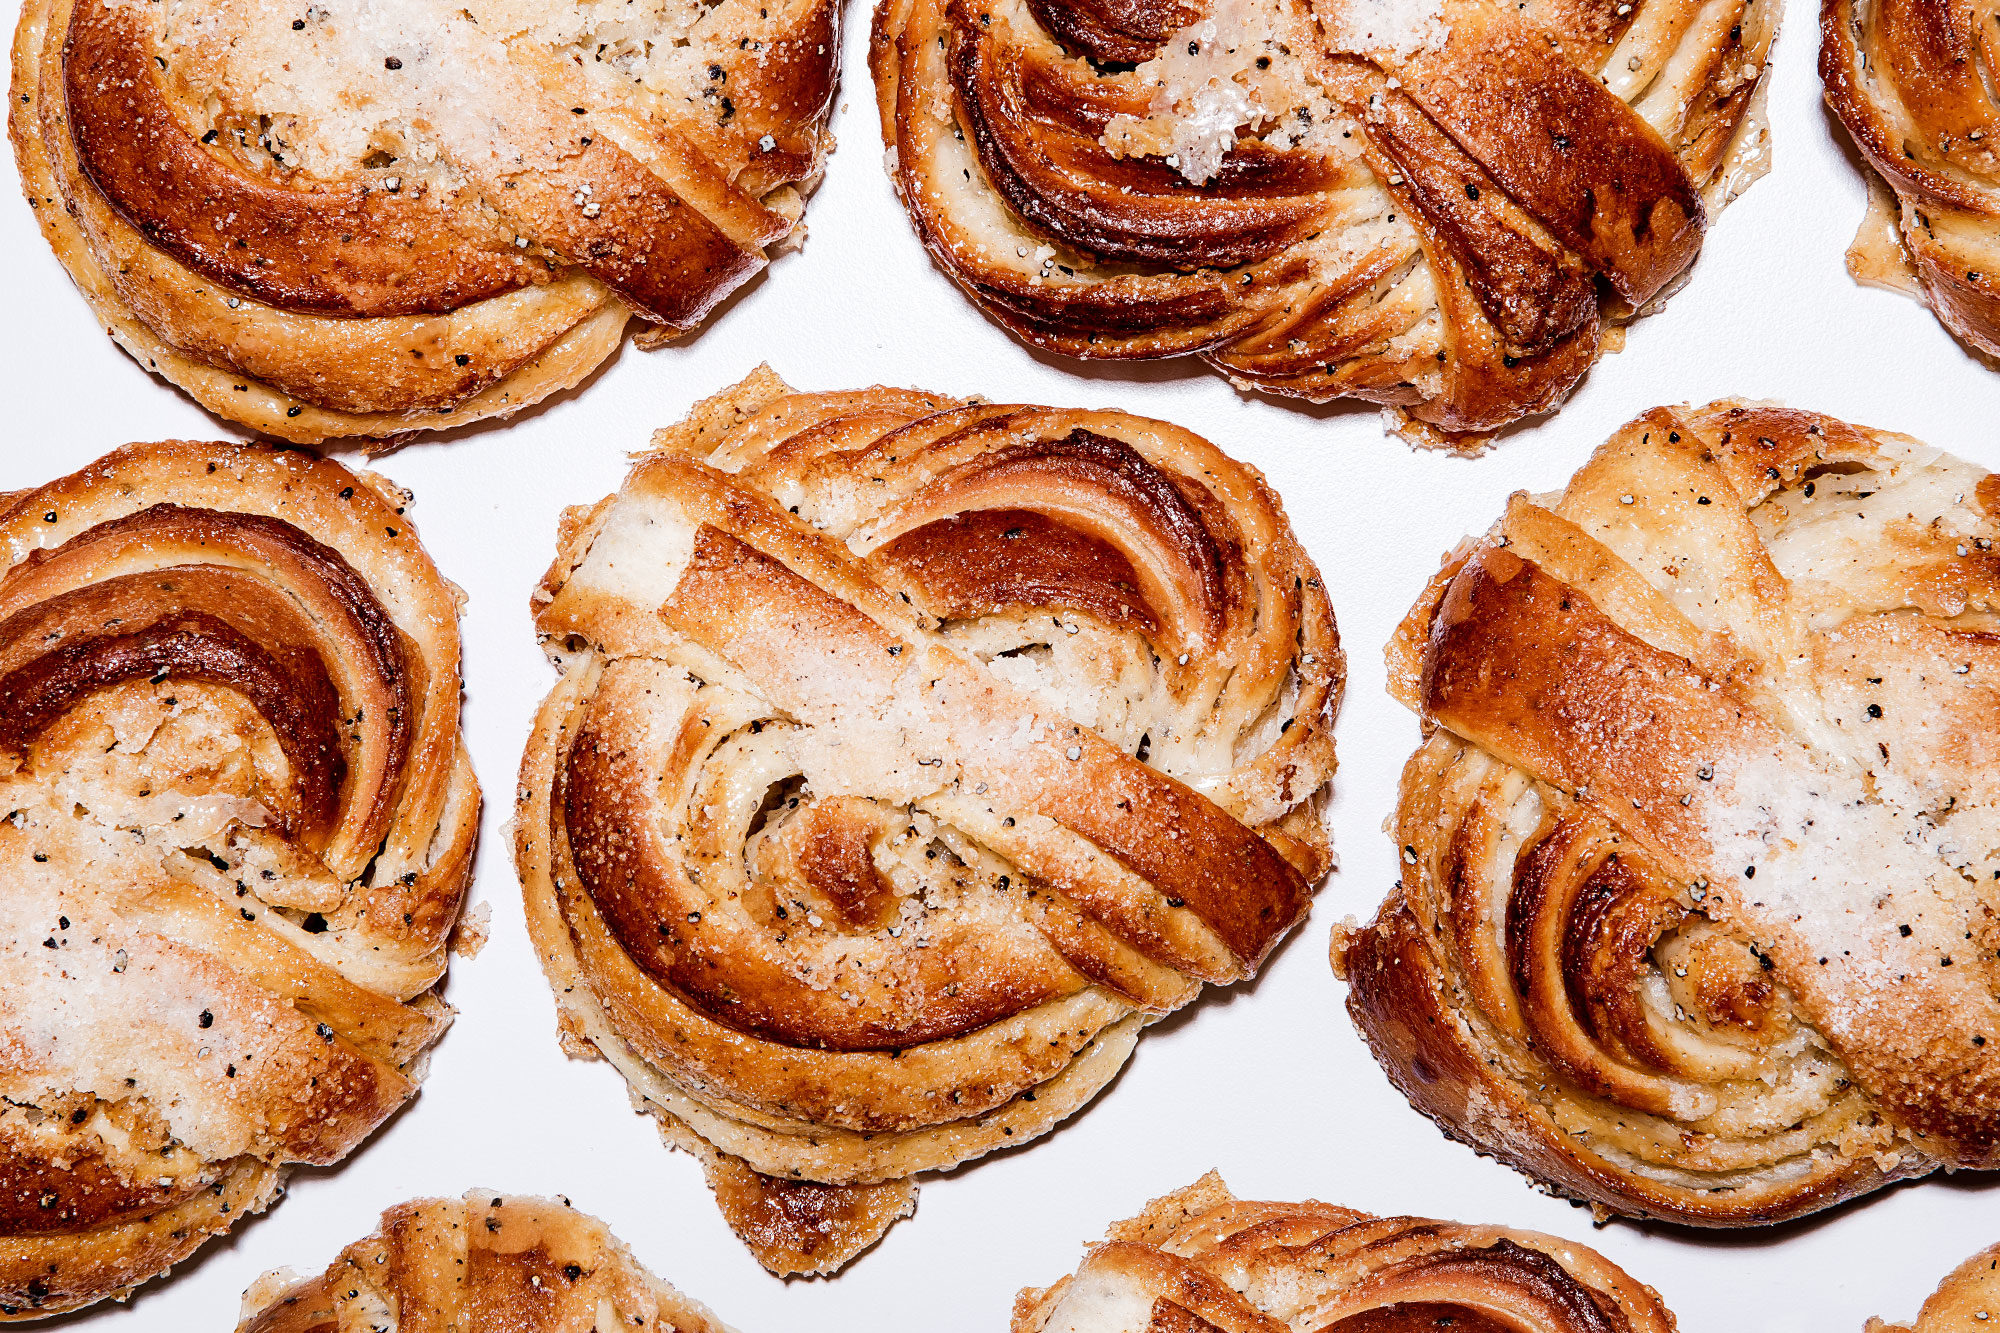 Article-Cardamom-Bun-Swedish-Danish-Pastry-Recipe-Fabrique-NYC